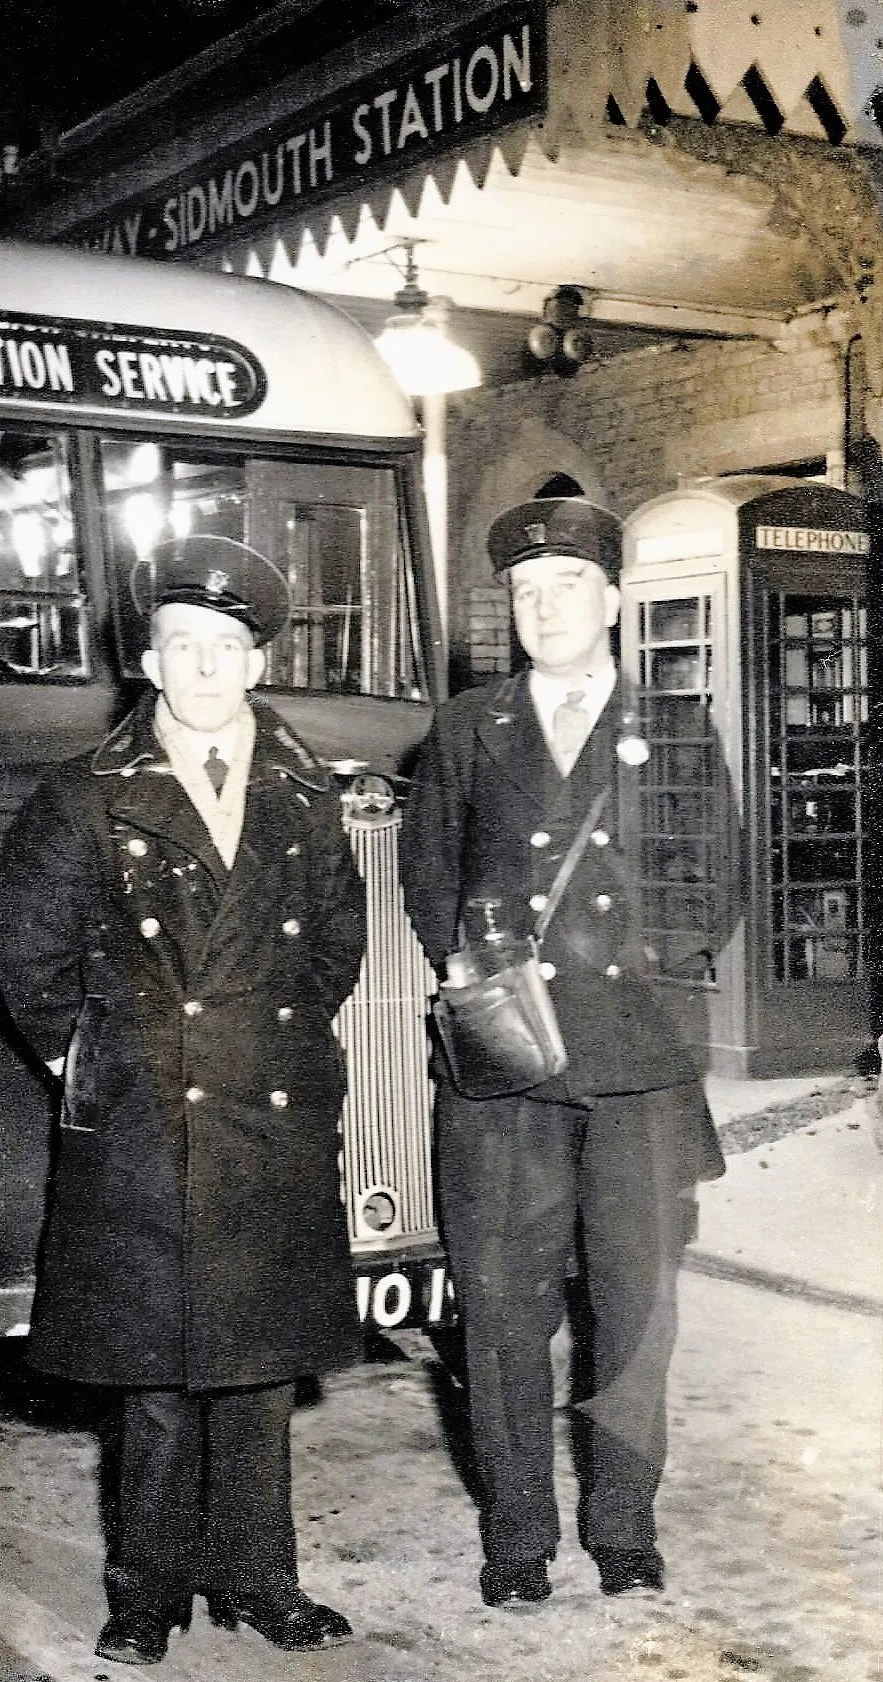 The Last bus Trip- Sidmouth station - 7.45pm 24th March 1951